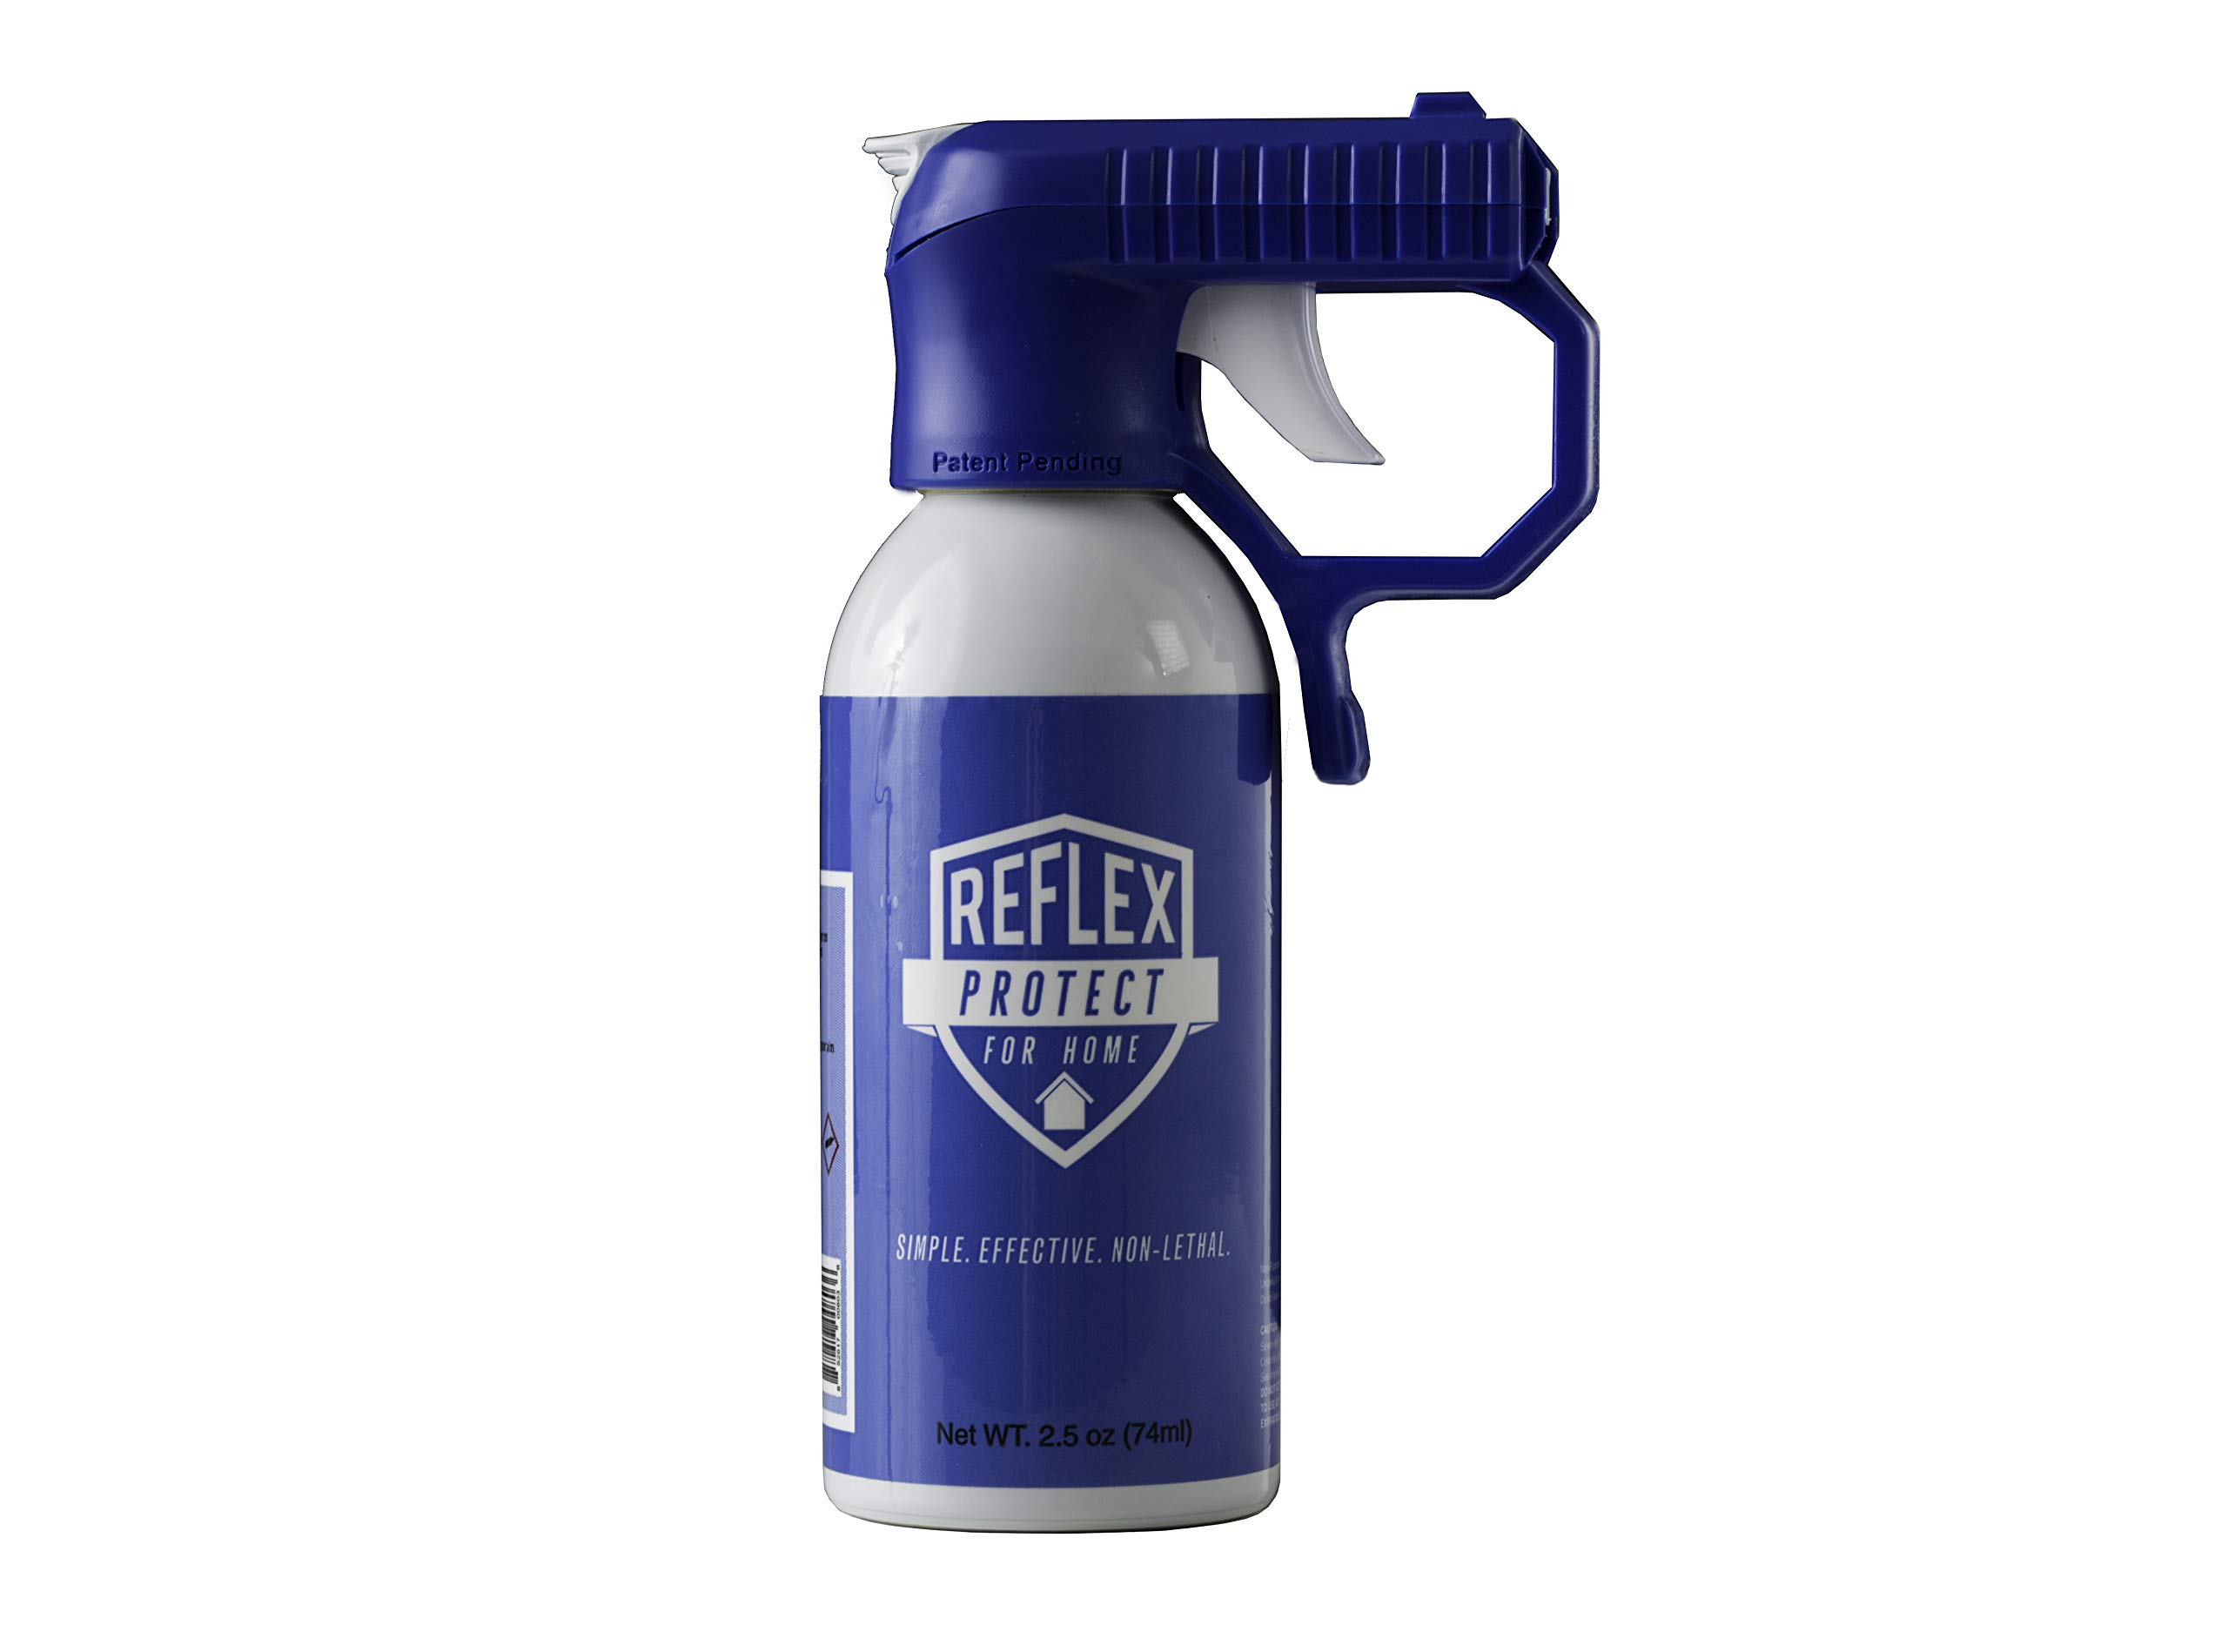 Reflex Protect 2.5 oz Personal Defense Spray Home & Work